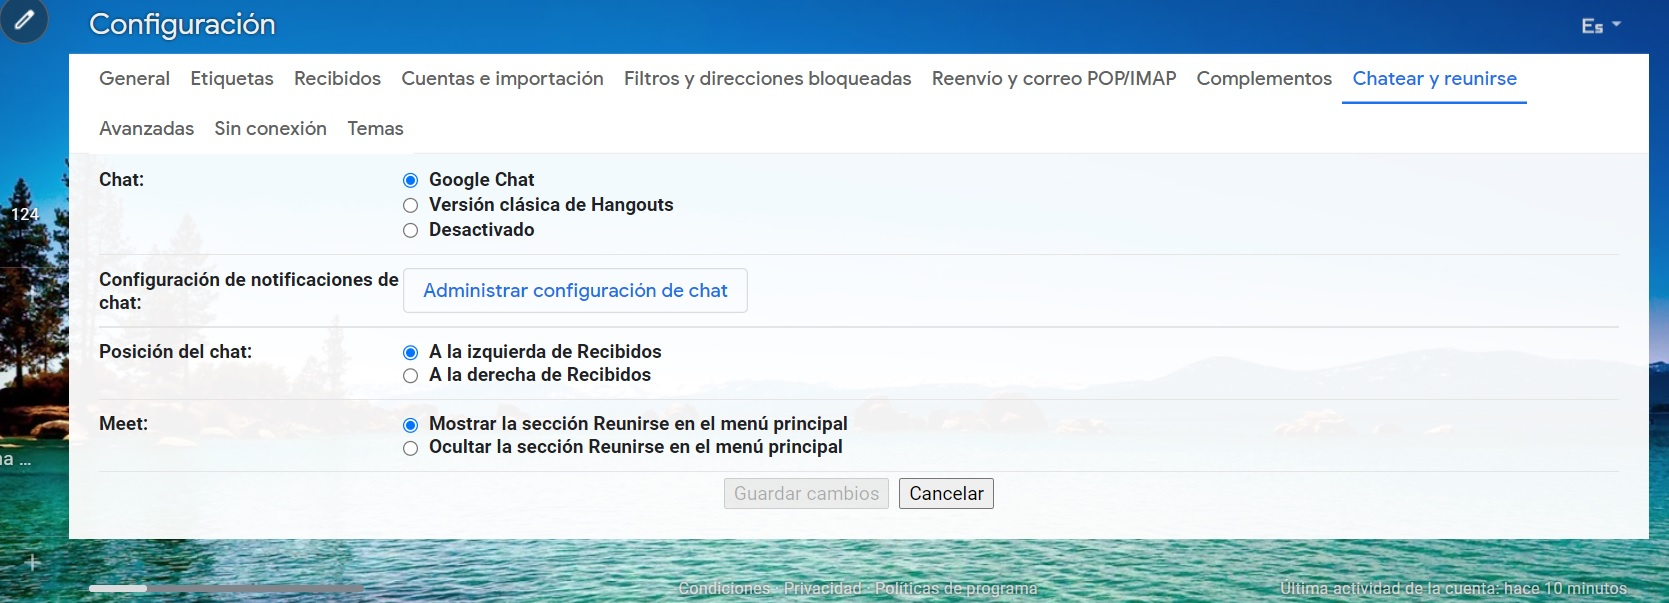 To activate Google Chat, you have to go into the settings menu of your Google account